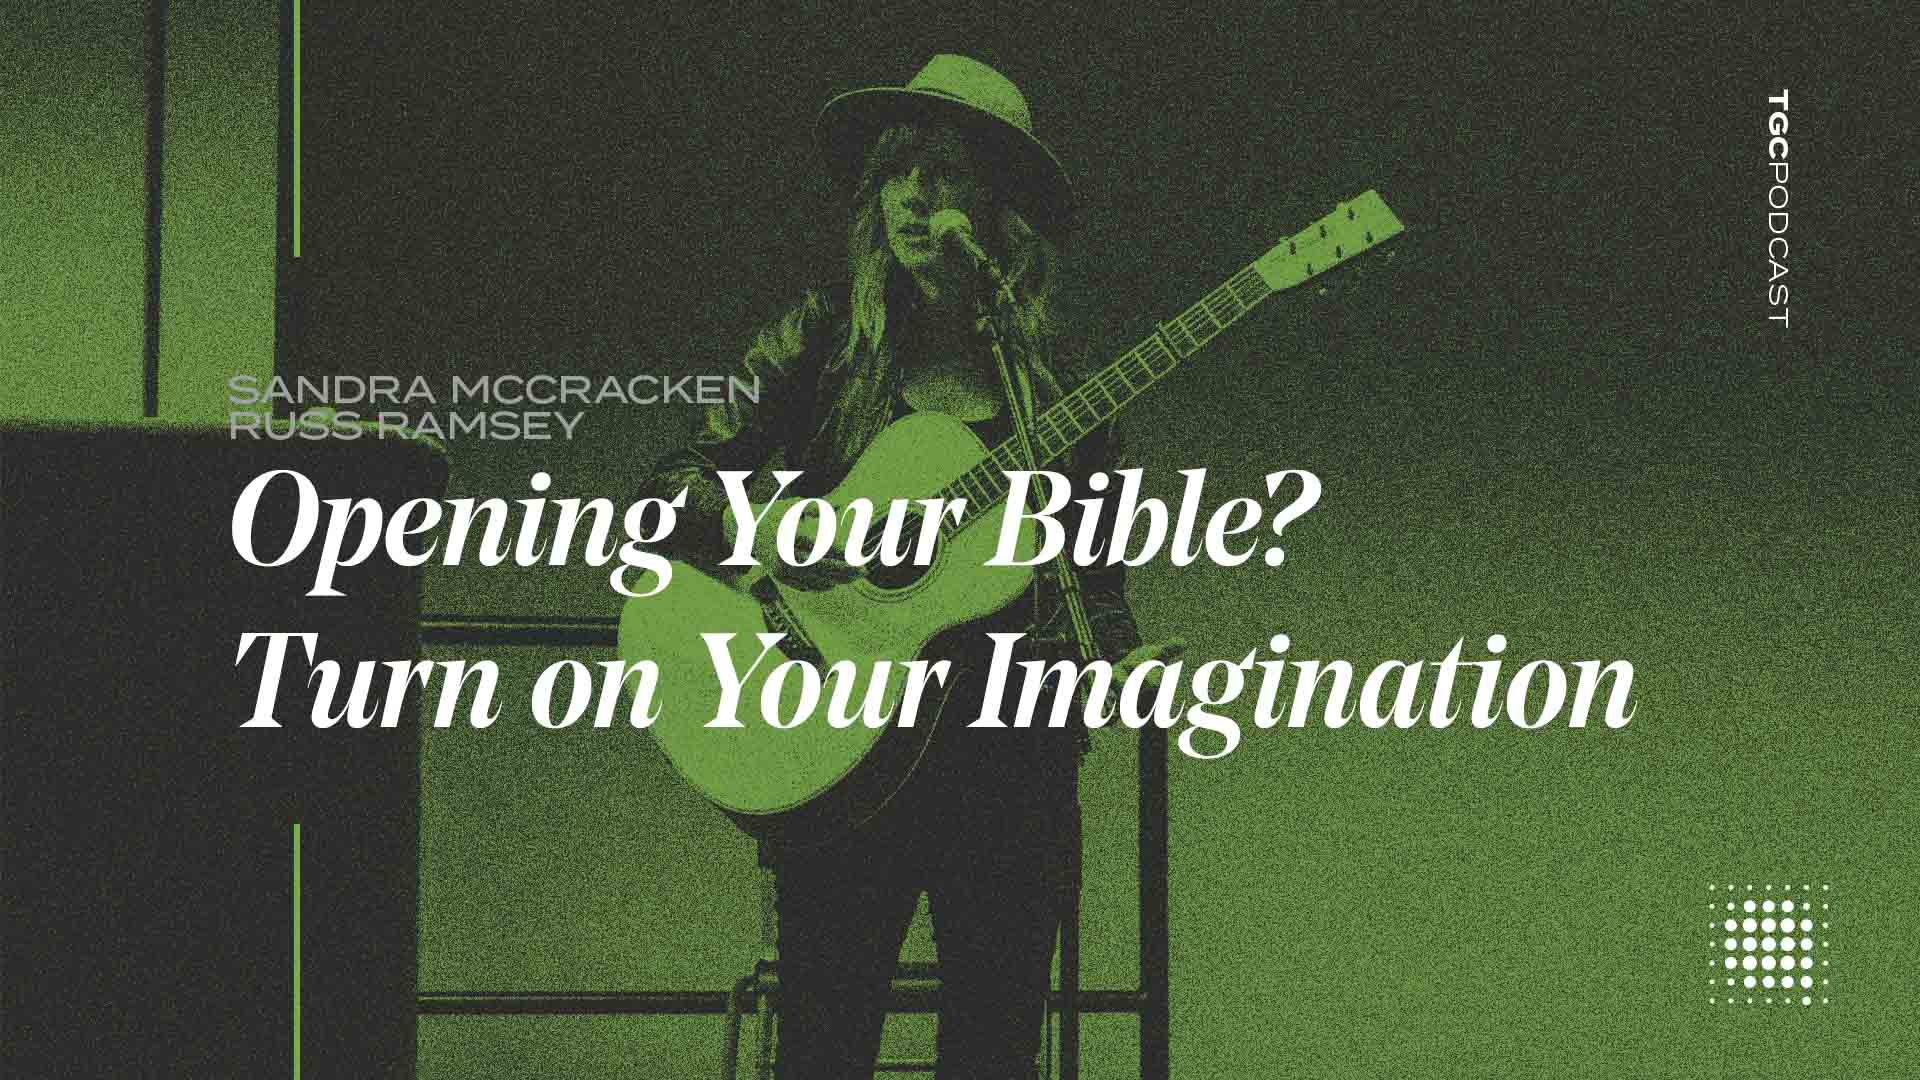 TGC Podcast: Opening Your Bible? Turn on Your Imagination